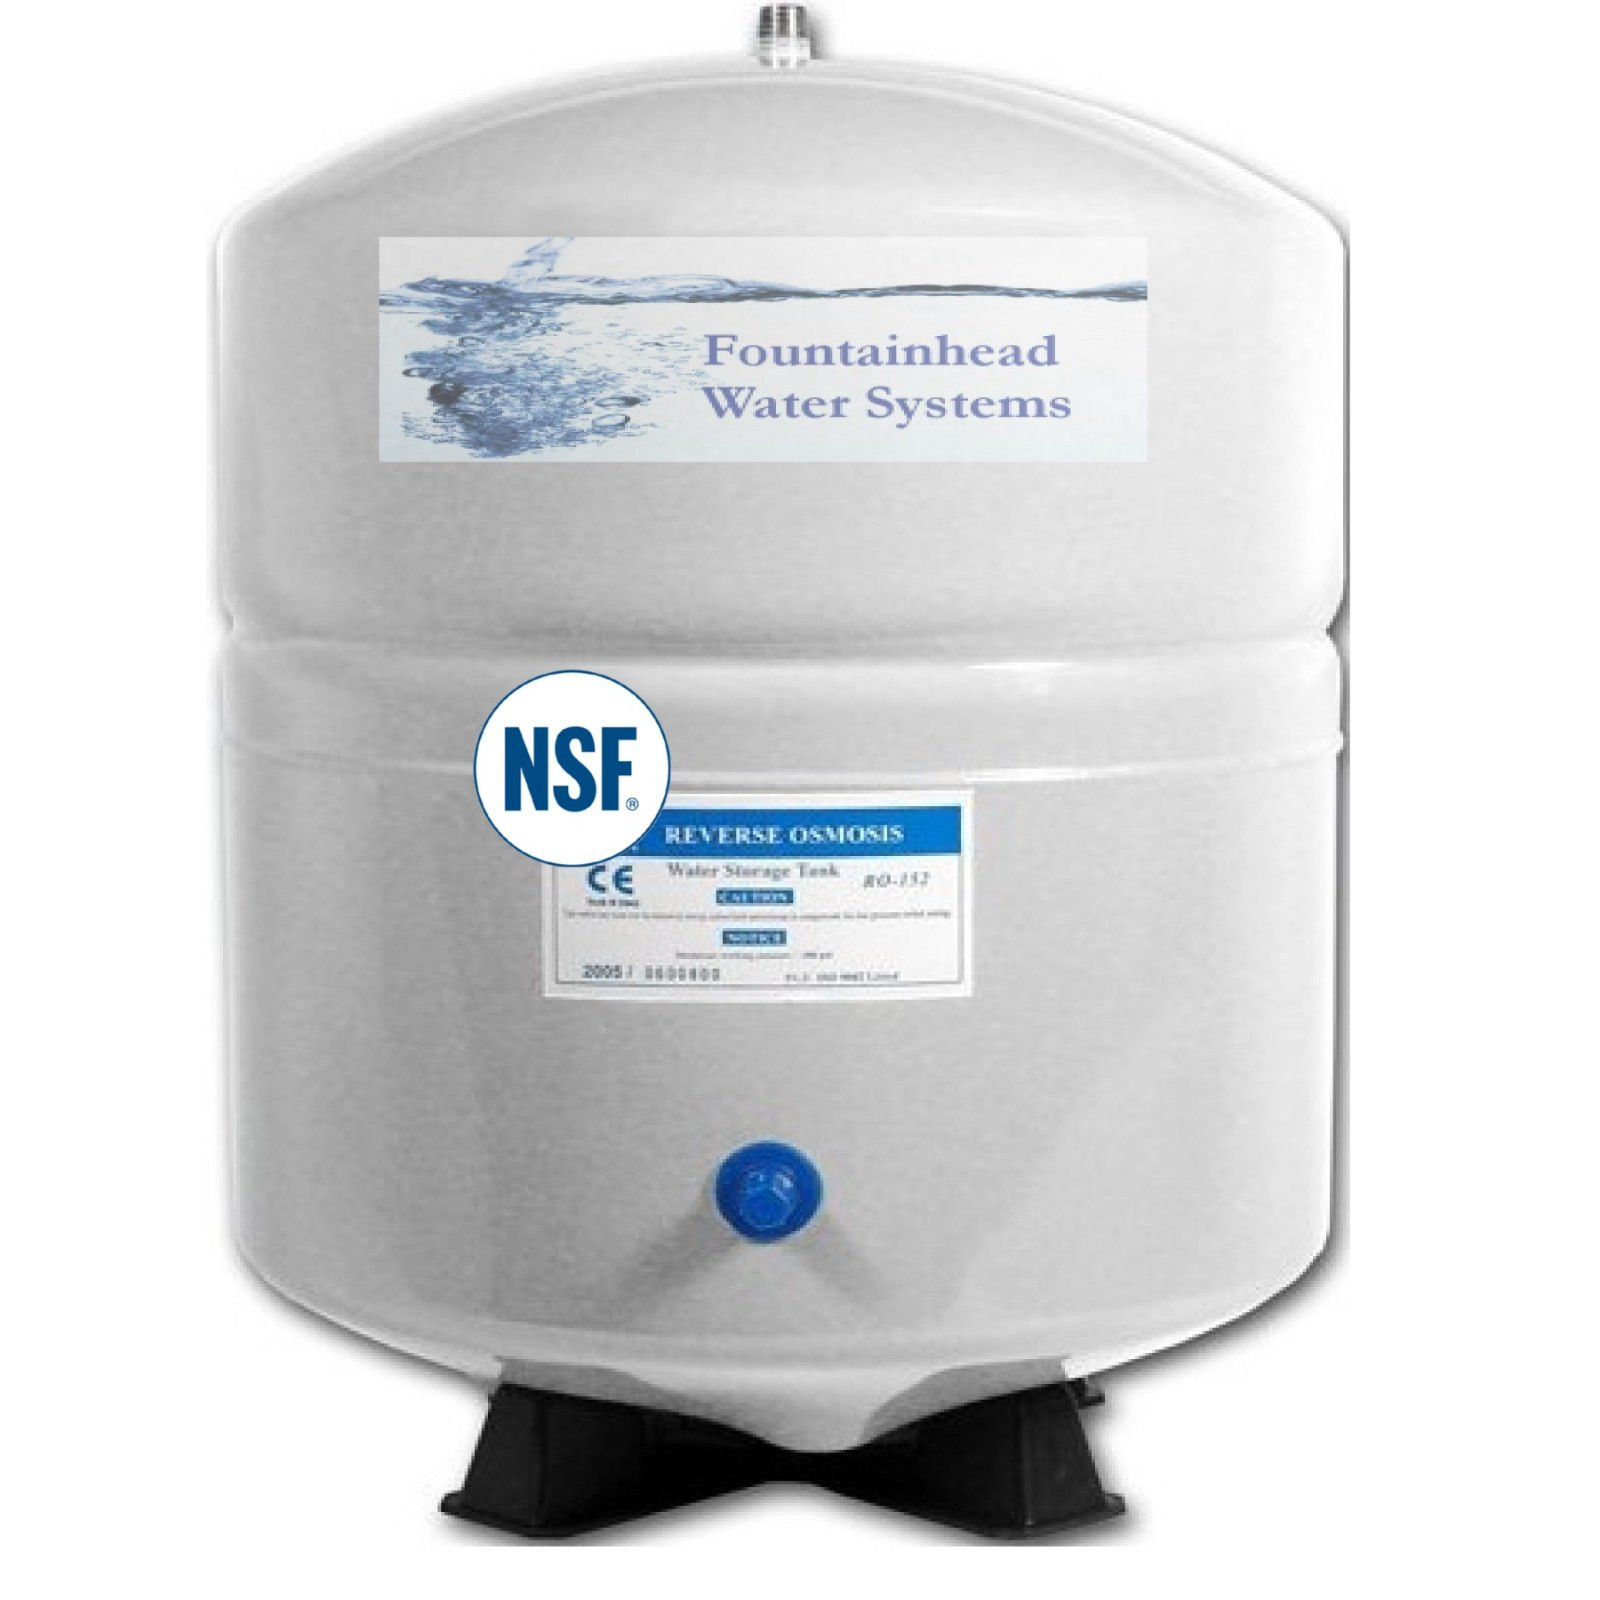 REVERSE OSMOSIS WATER STORAGE TANK 3.2G with storage capacity of 2.8 gallon